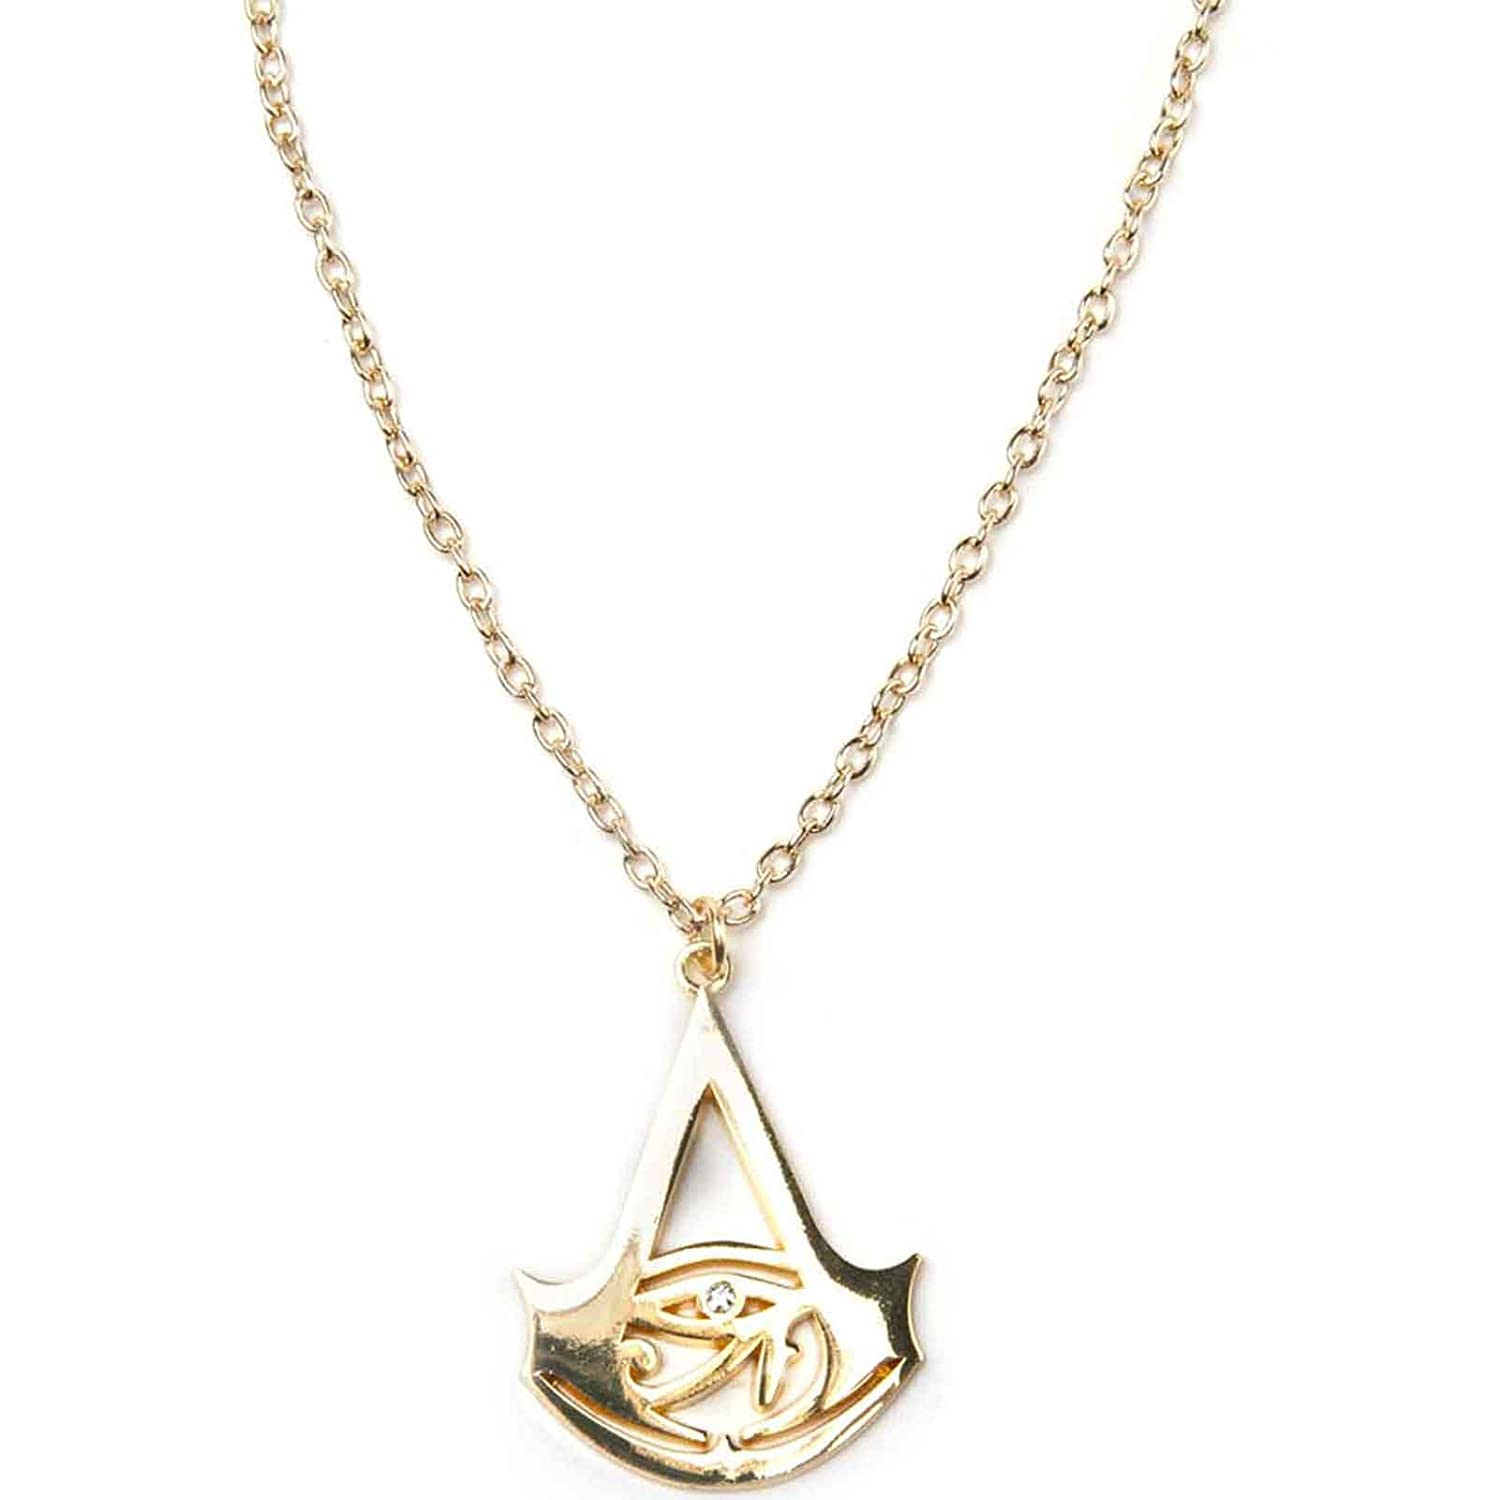 Assassins Creed Origins Necklace Creed Logo new PS4 Xbox Official Assassins Creed Merch